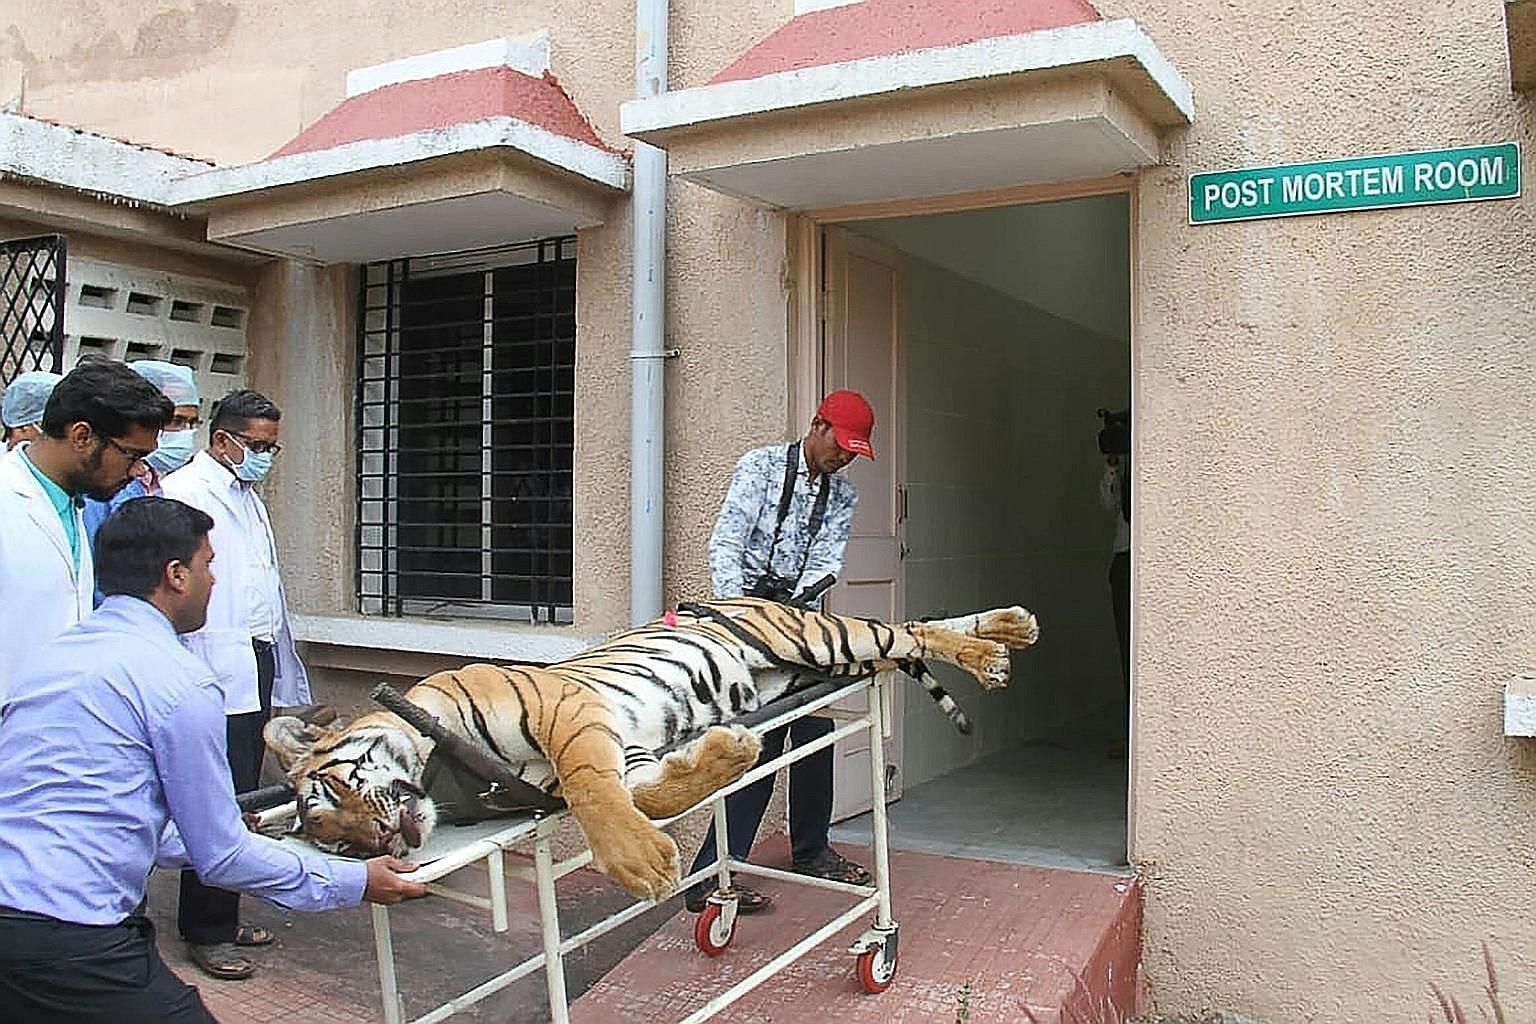 Gorewada Rescue Centre personnel taking the body of T1, or Avni, into a post-mortem room at the centre in Nagpur last Saturday. She was shot dead last Friday by one of the private shooters contracted for the job. Wildlife activists accuse the team le